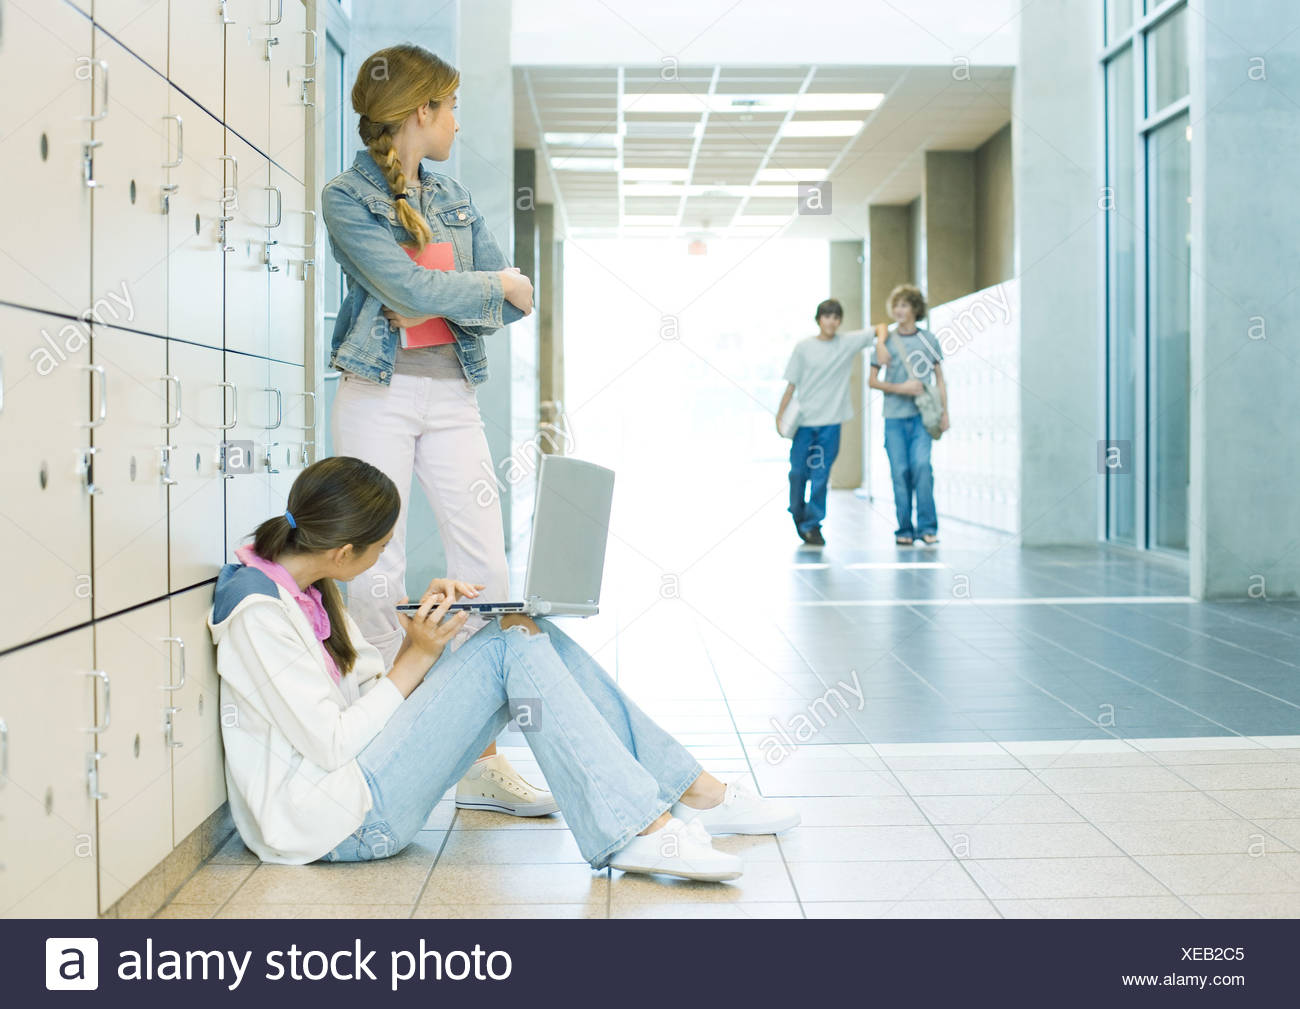 Two high school girls by lockers, watching teen boys approaching - Stock Image